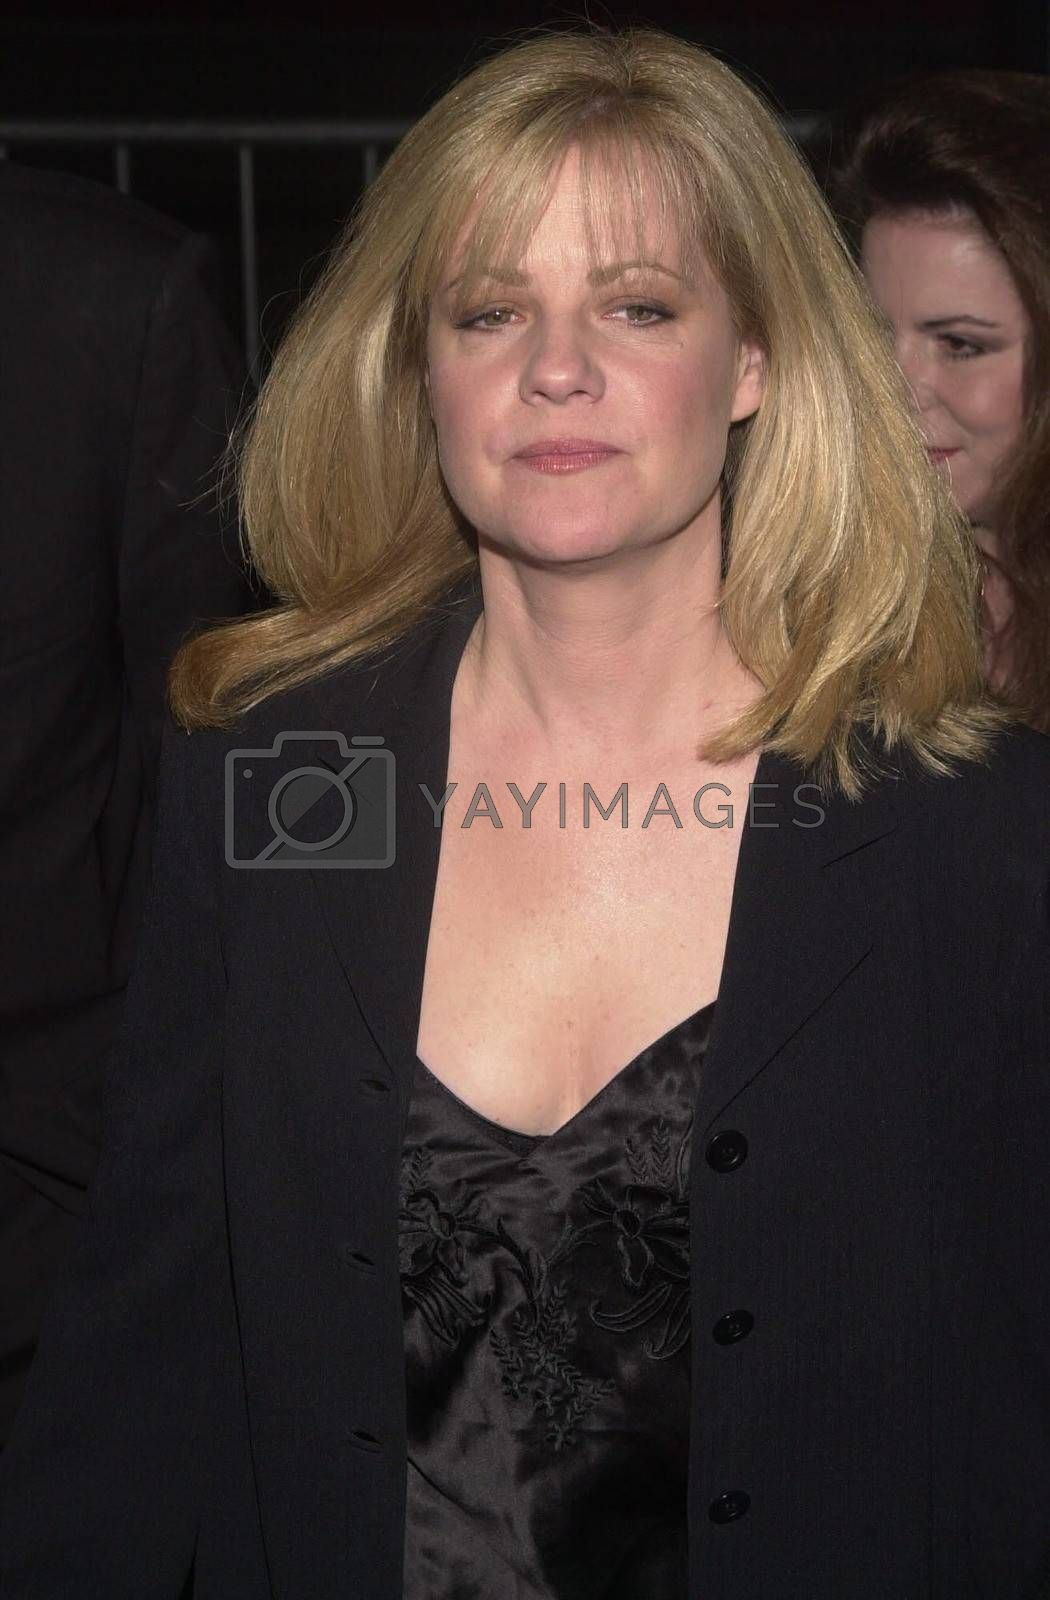 """Bonnie Hunt at the premiere of MGM's """"RETURN TO ME"""" in Century City, 04-03-00"""